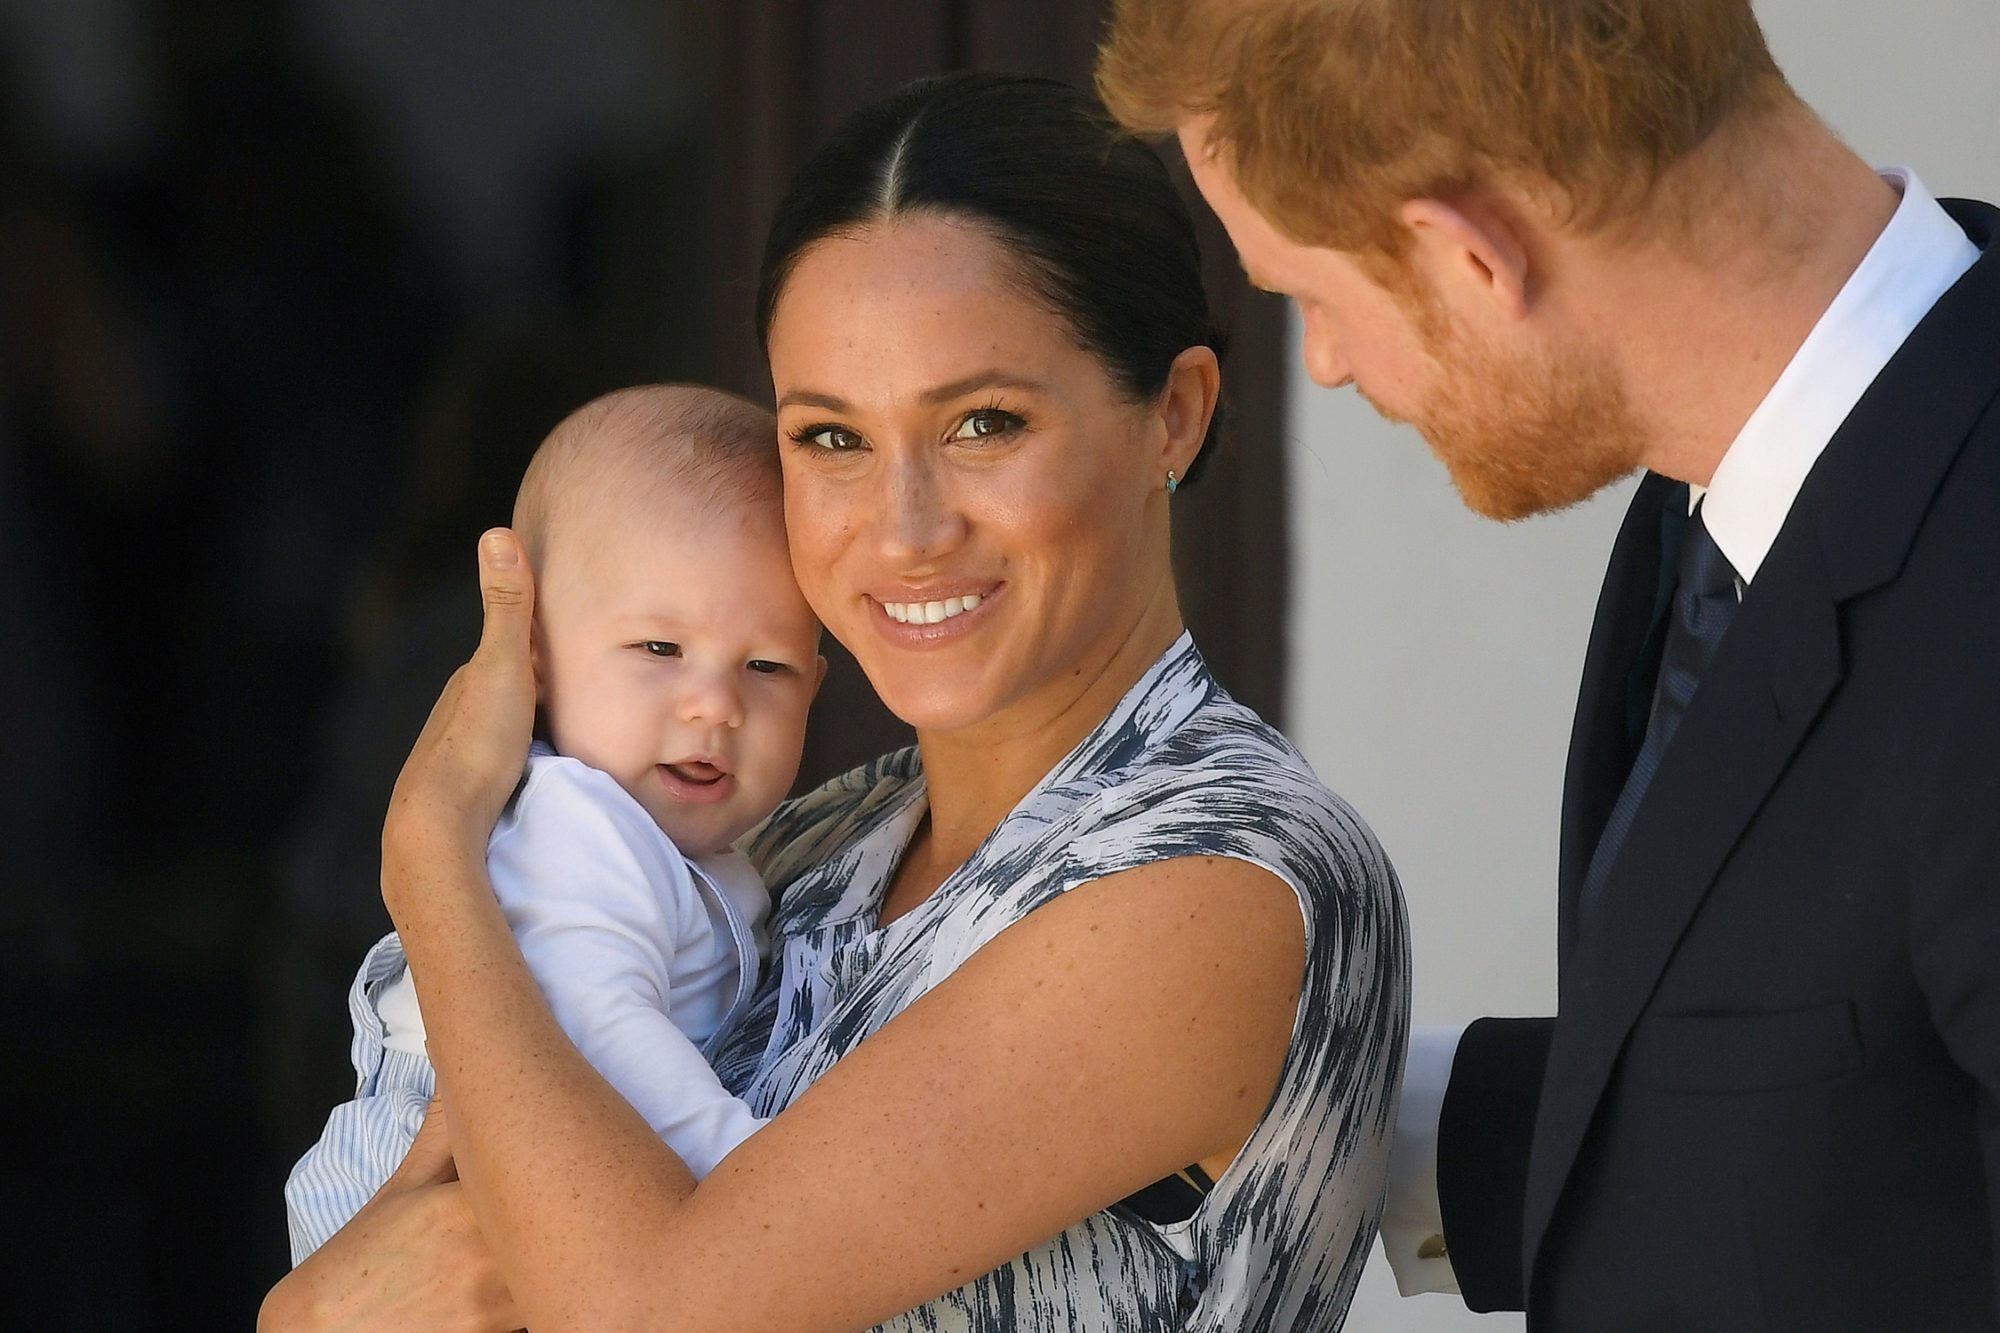 Smiling Meghan Markle Holding Baby Archie with Prince Harry